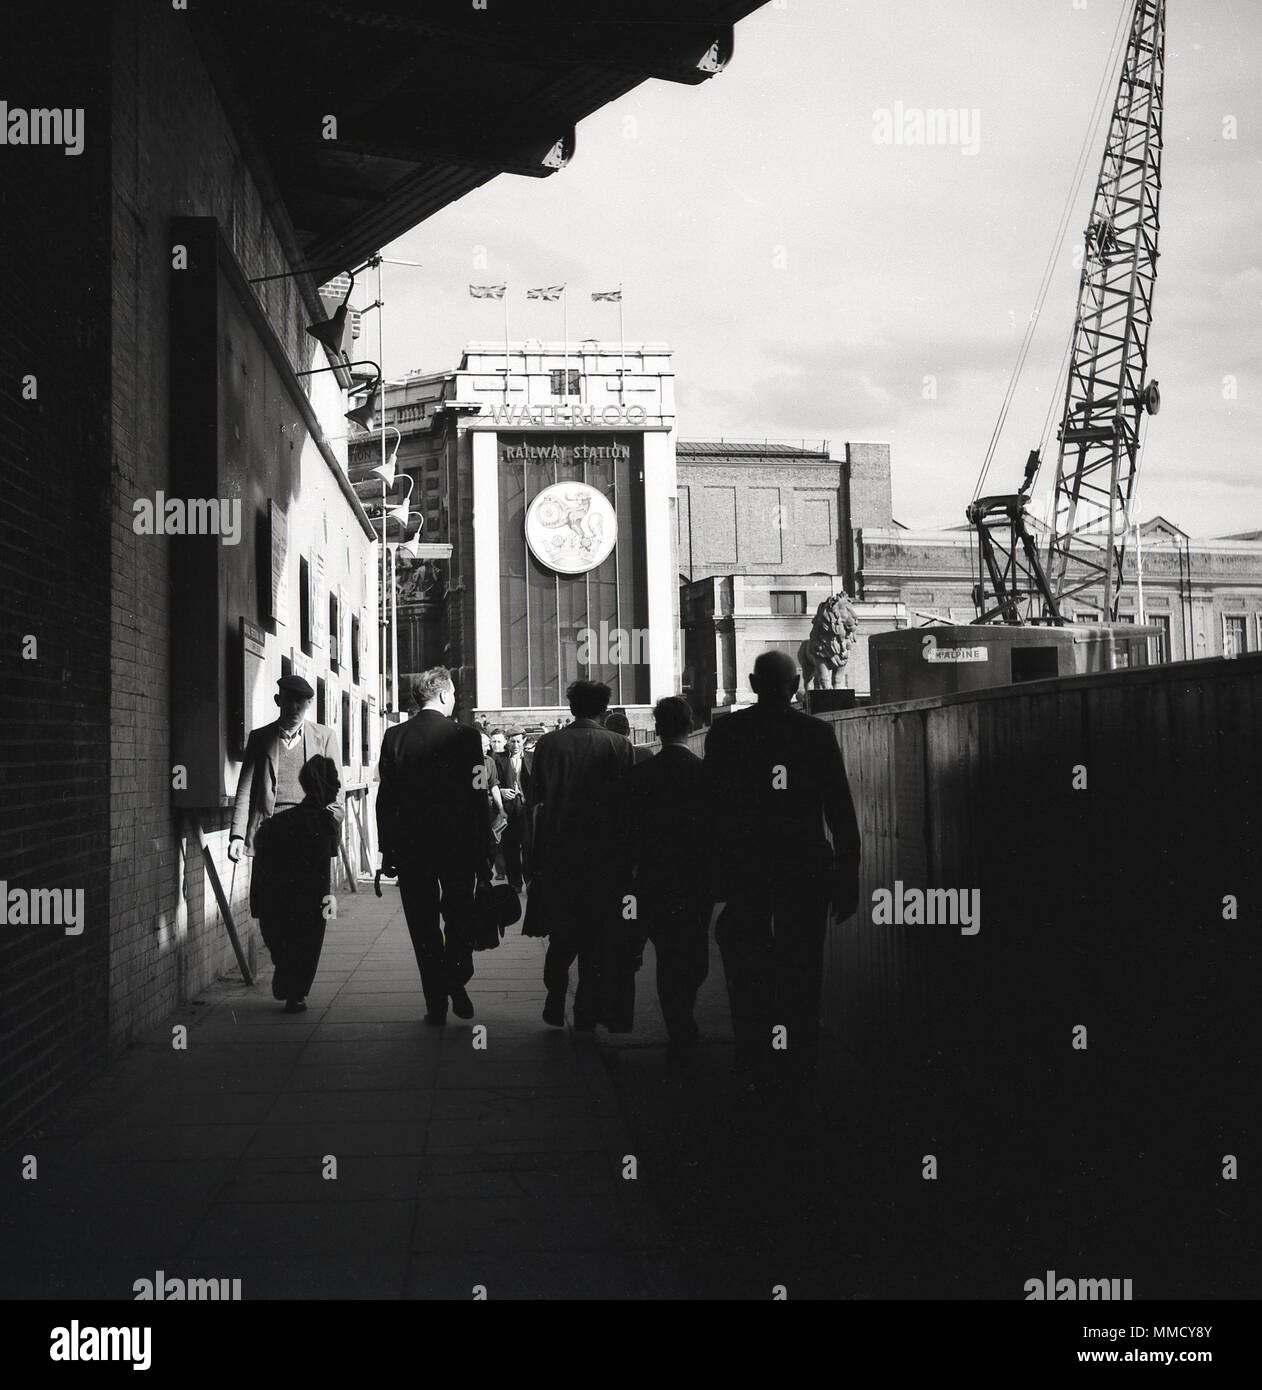 1960s, commuters walking on a concourse towards waterloo railway station, on the south bank, London, England, UK. A crane can be seen on the foreground, as massive construction or building works were taking pace at this time on the South Bank of the River Thames, including the building of the Shell Centre, an enormous office tower block. - Stock Image